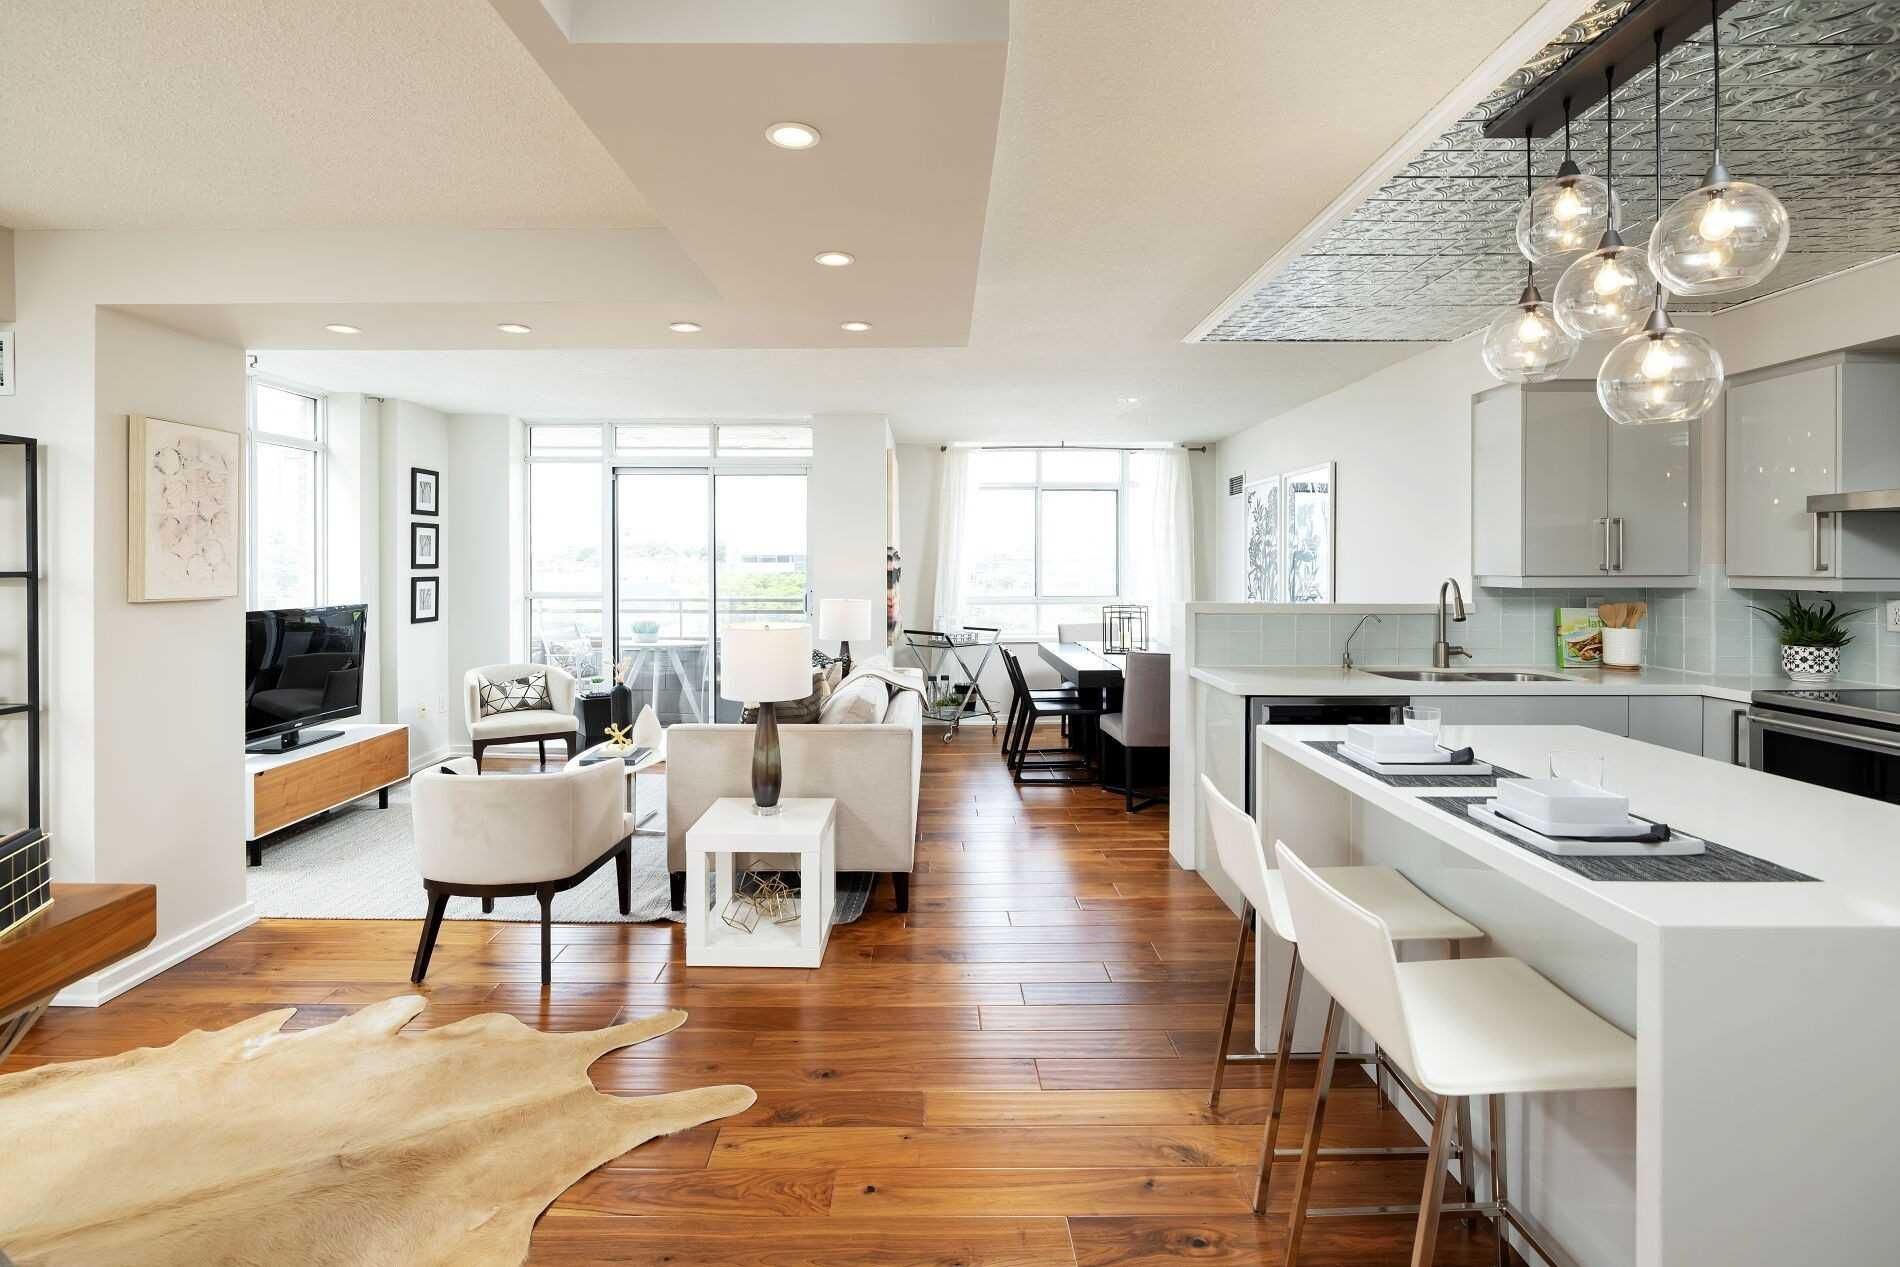 80 Mill St, unit 509 for sale in Toronto - image #1